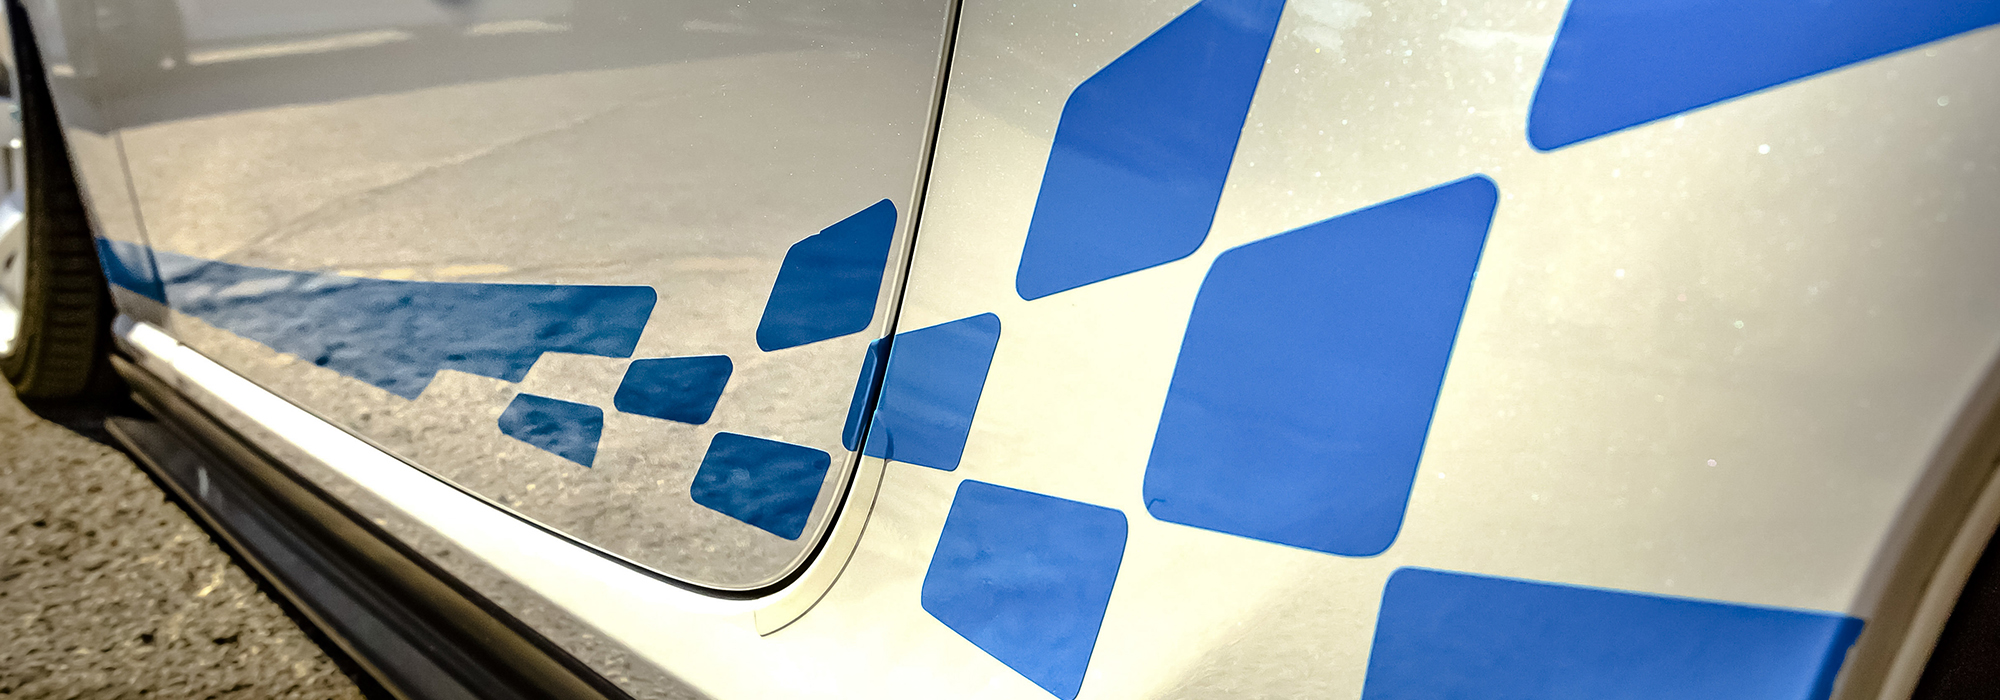 Blue decal on the exterior body of a white car